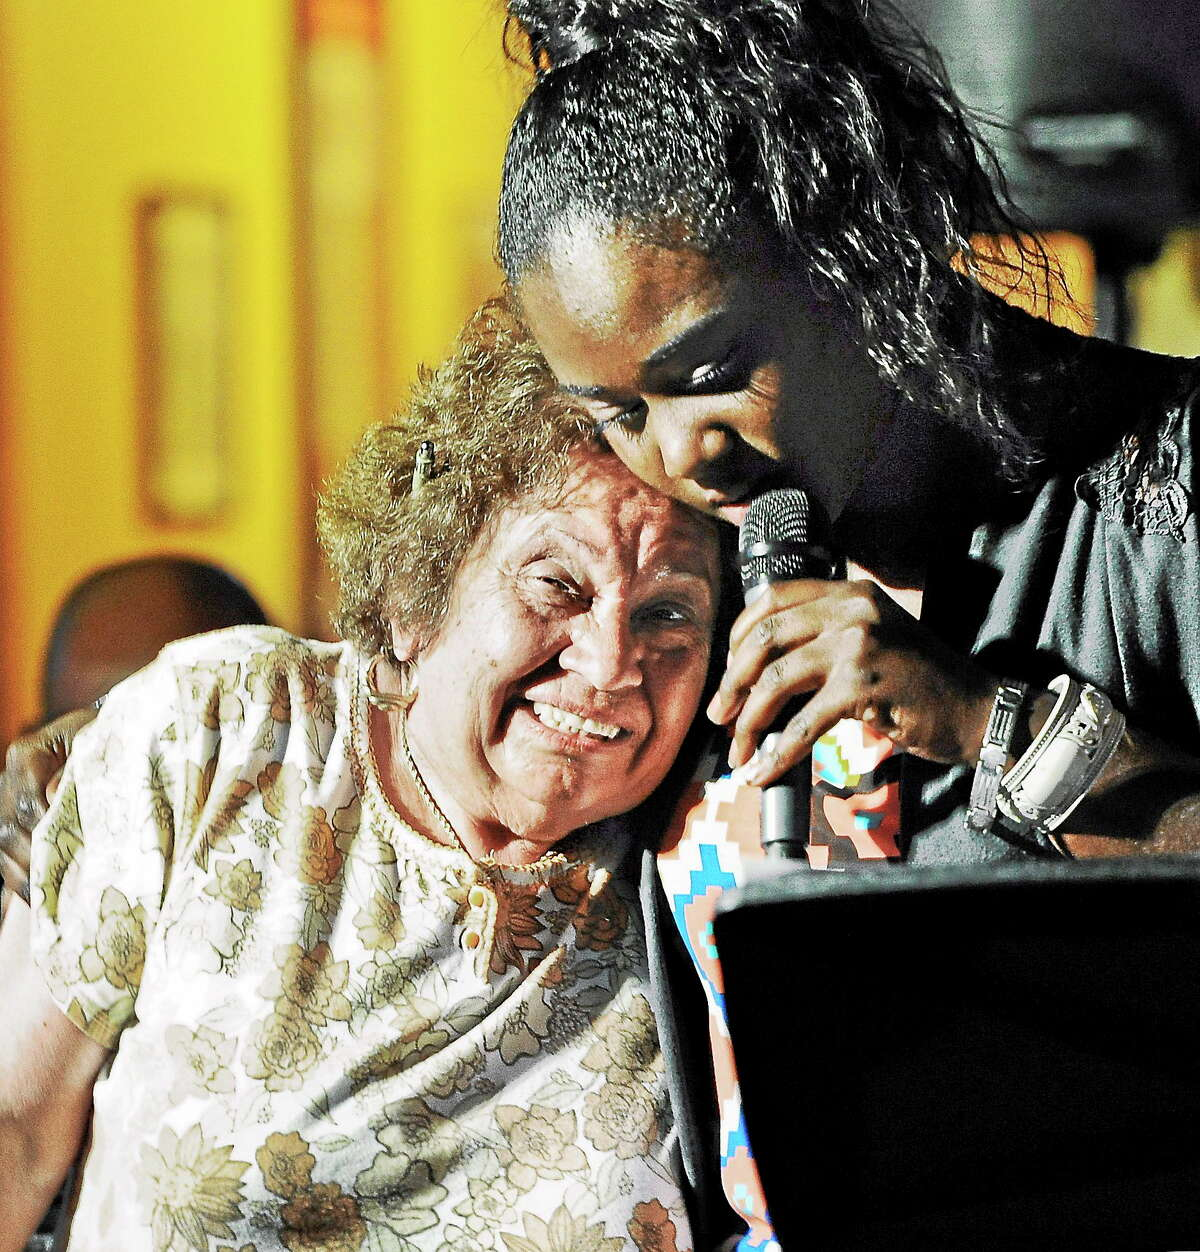 Nekita Waller performs to a smiling fan during a show at Red Rock Tavern in Hartford last summer. The Middletown vocalist is planning to travel around town next week in singing love-themed songs to area businesses and homes for Valentine's Day.